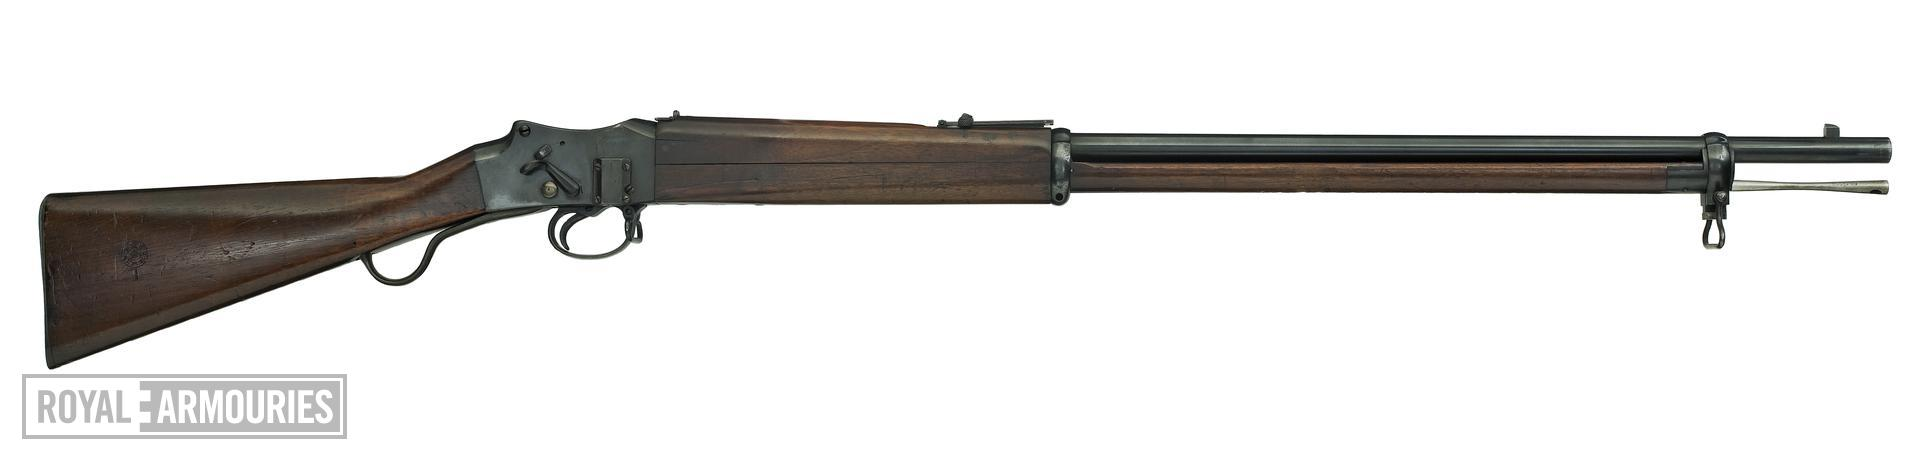 Centrefire breech-loading rifle - Experimental Martini 1st Model